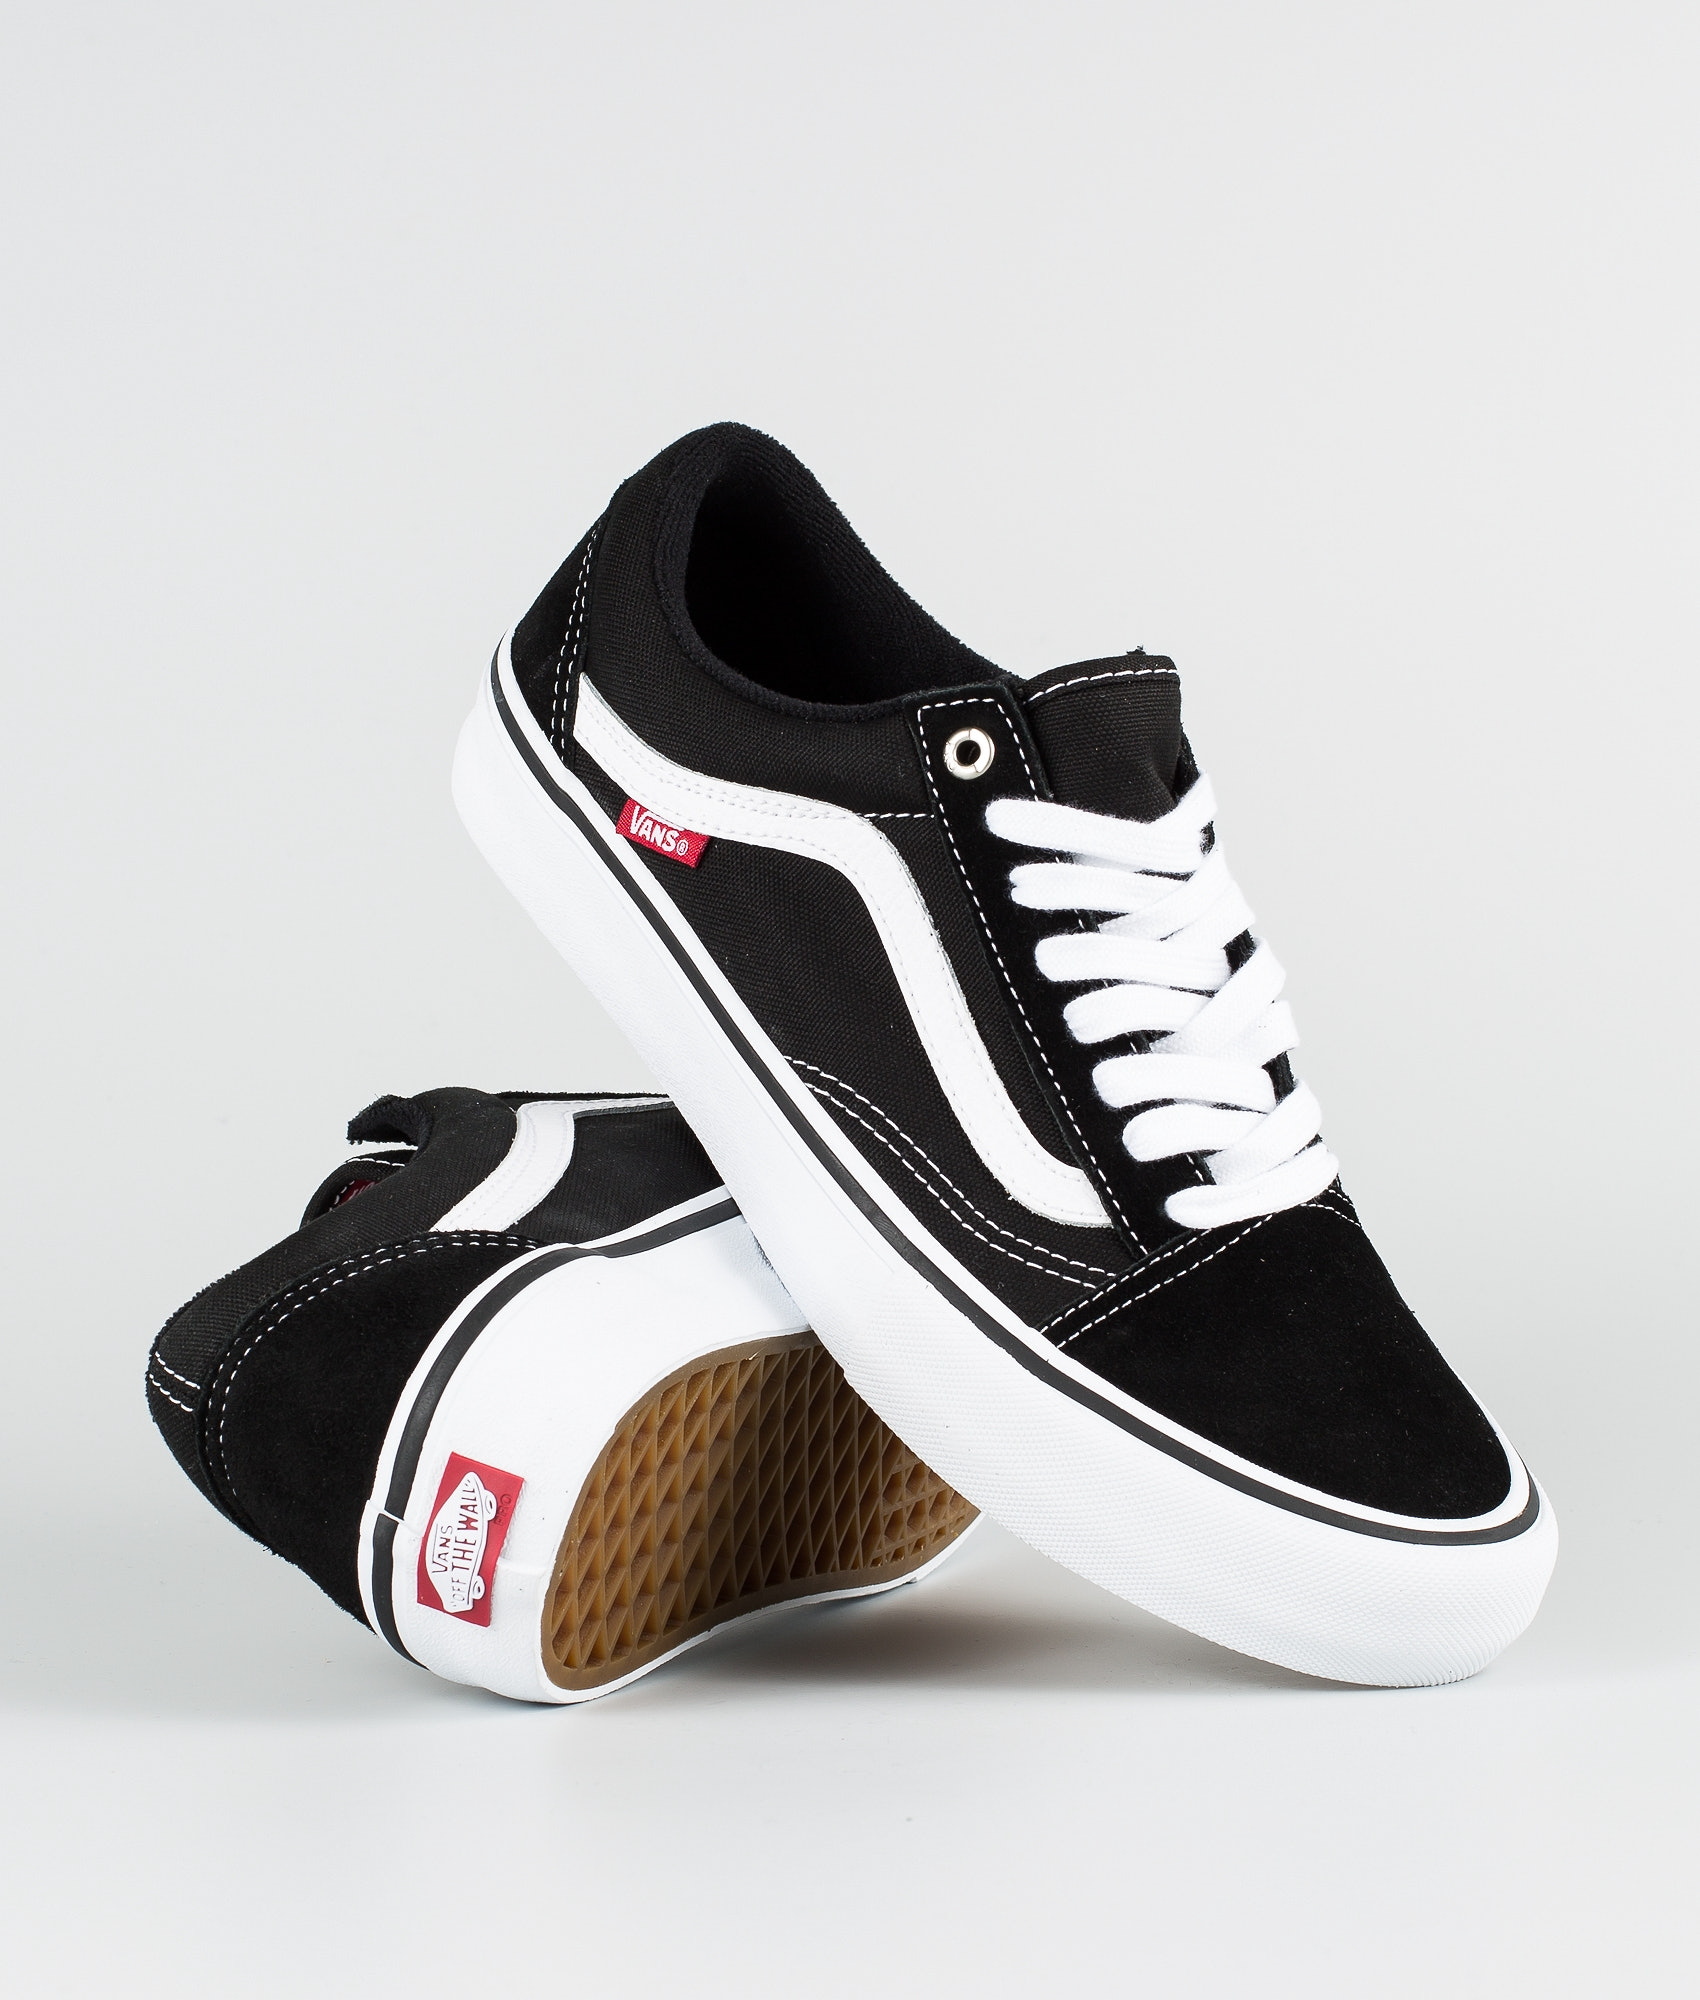 d87daaa7c7e Vans Old Skool Pro Shoes Black White - Ridestore.com